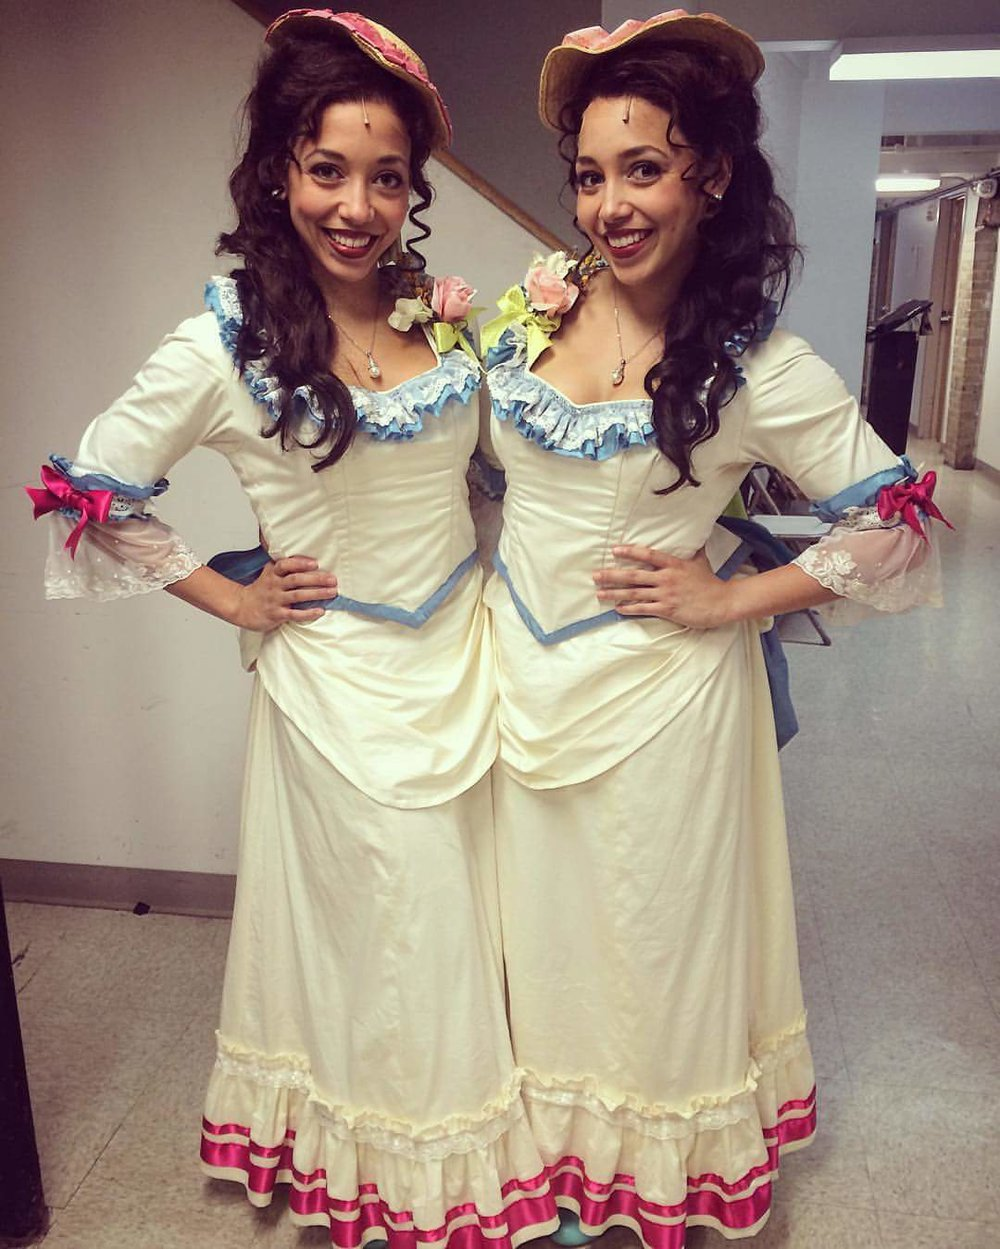 1key - 2016 June - Pirates of Penzance - Alanna and Claire.jpg